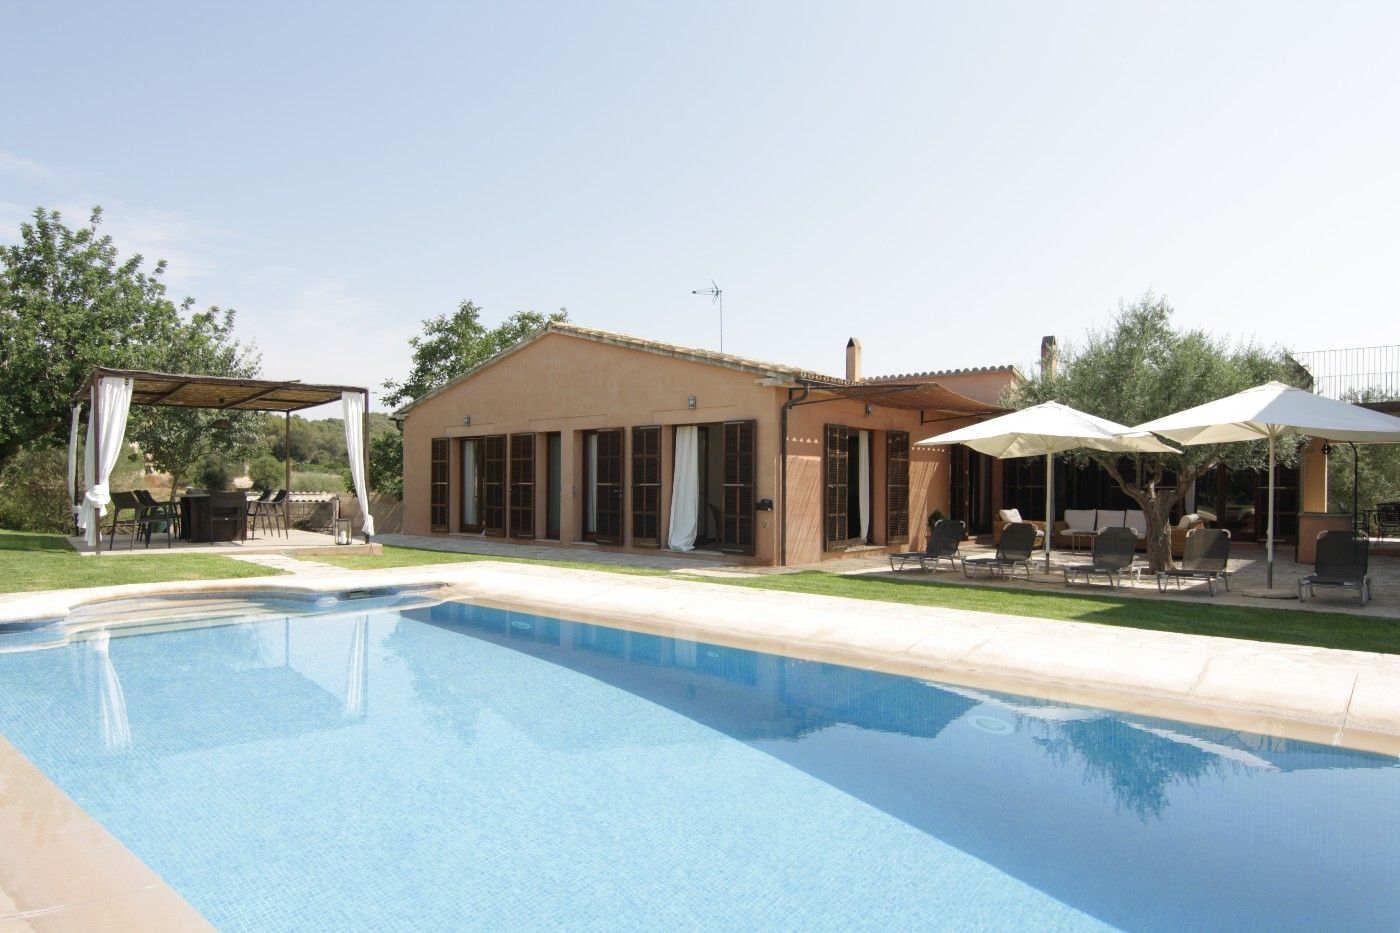 Rent House in Vilafranca de Bonany. Finca con piscina privada